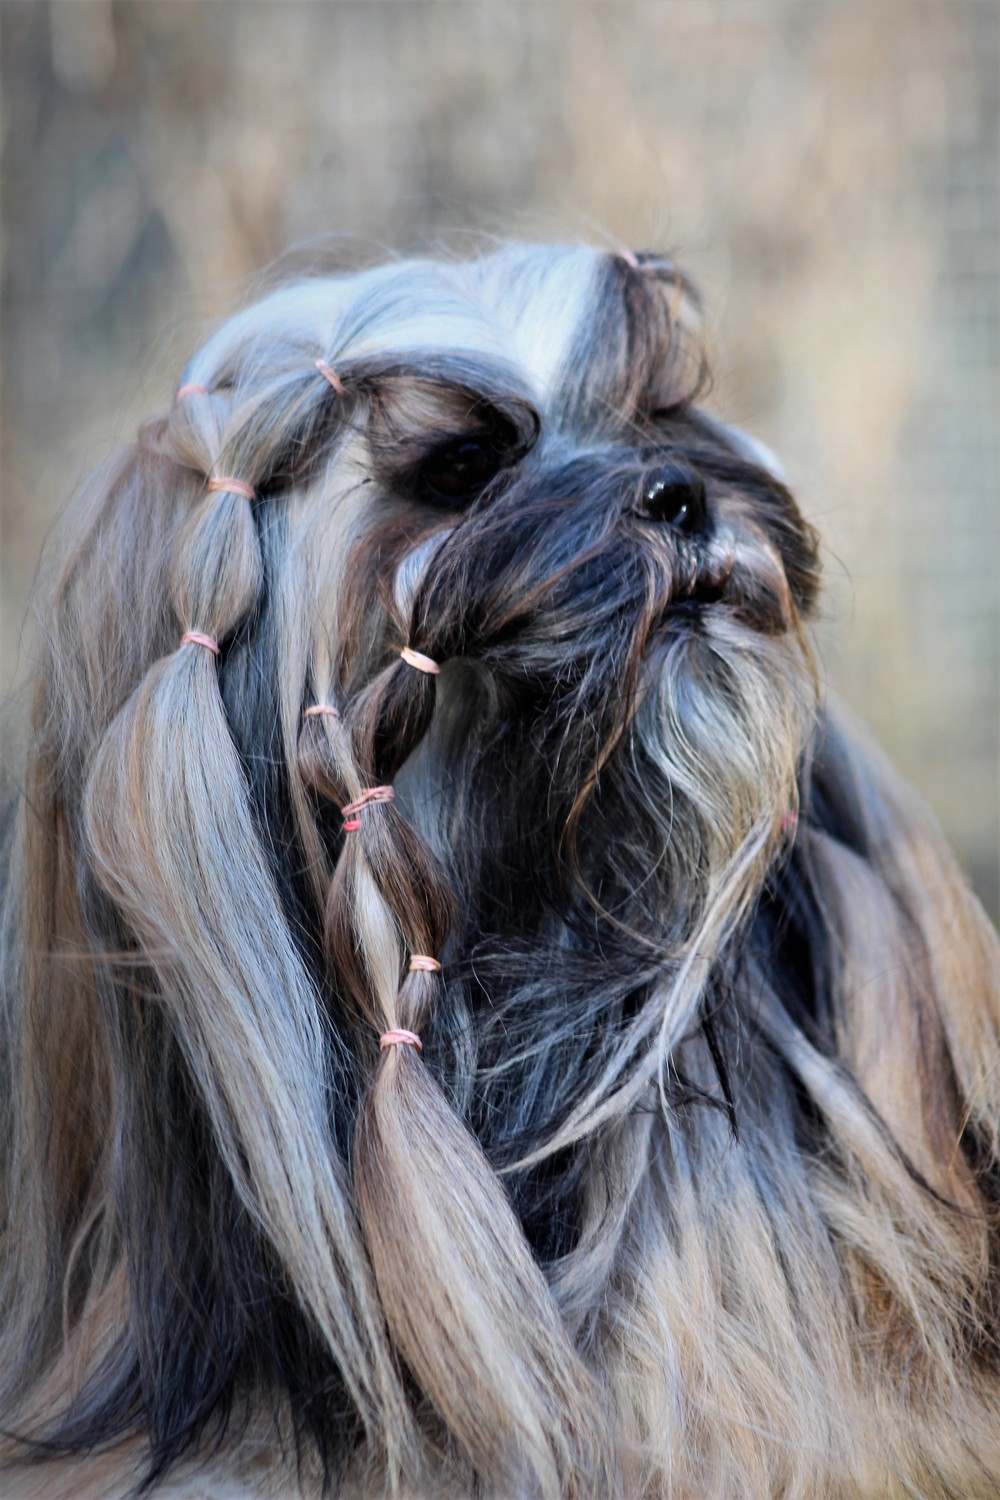 We should stop shortening the muzzles/heads of many breeds – time to look back